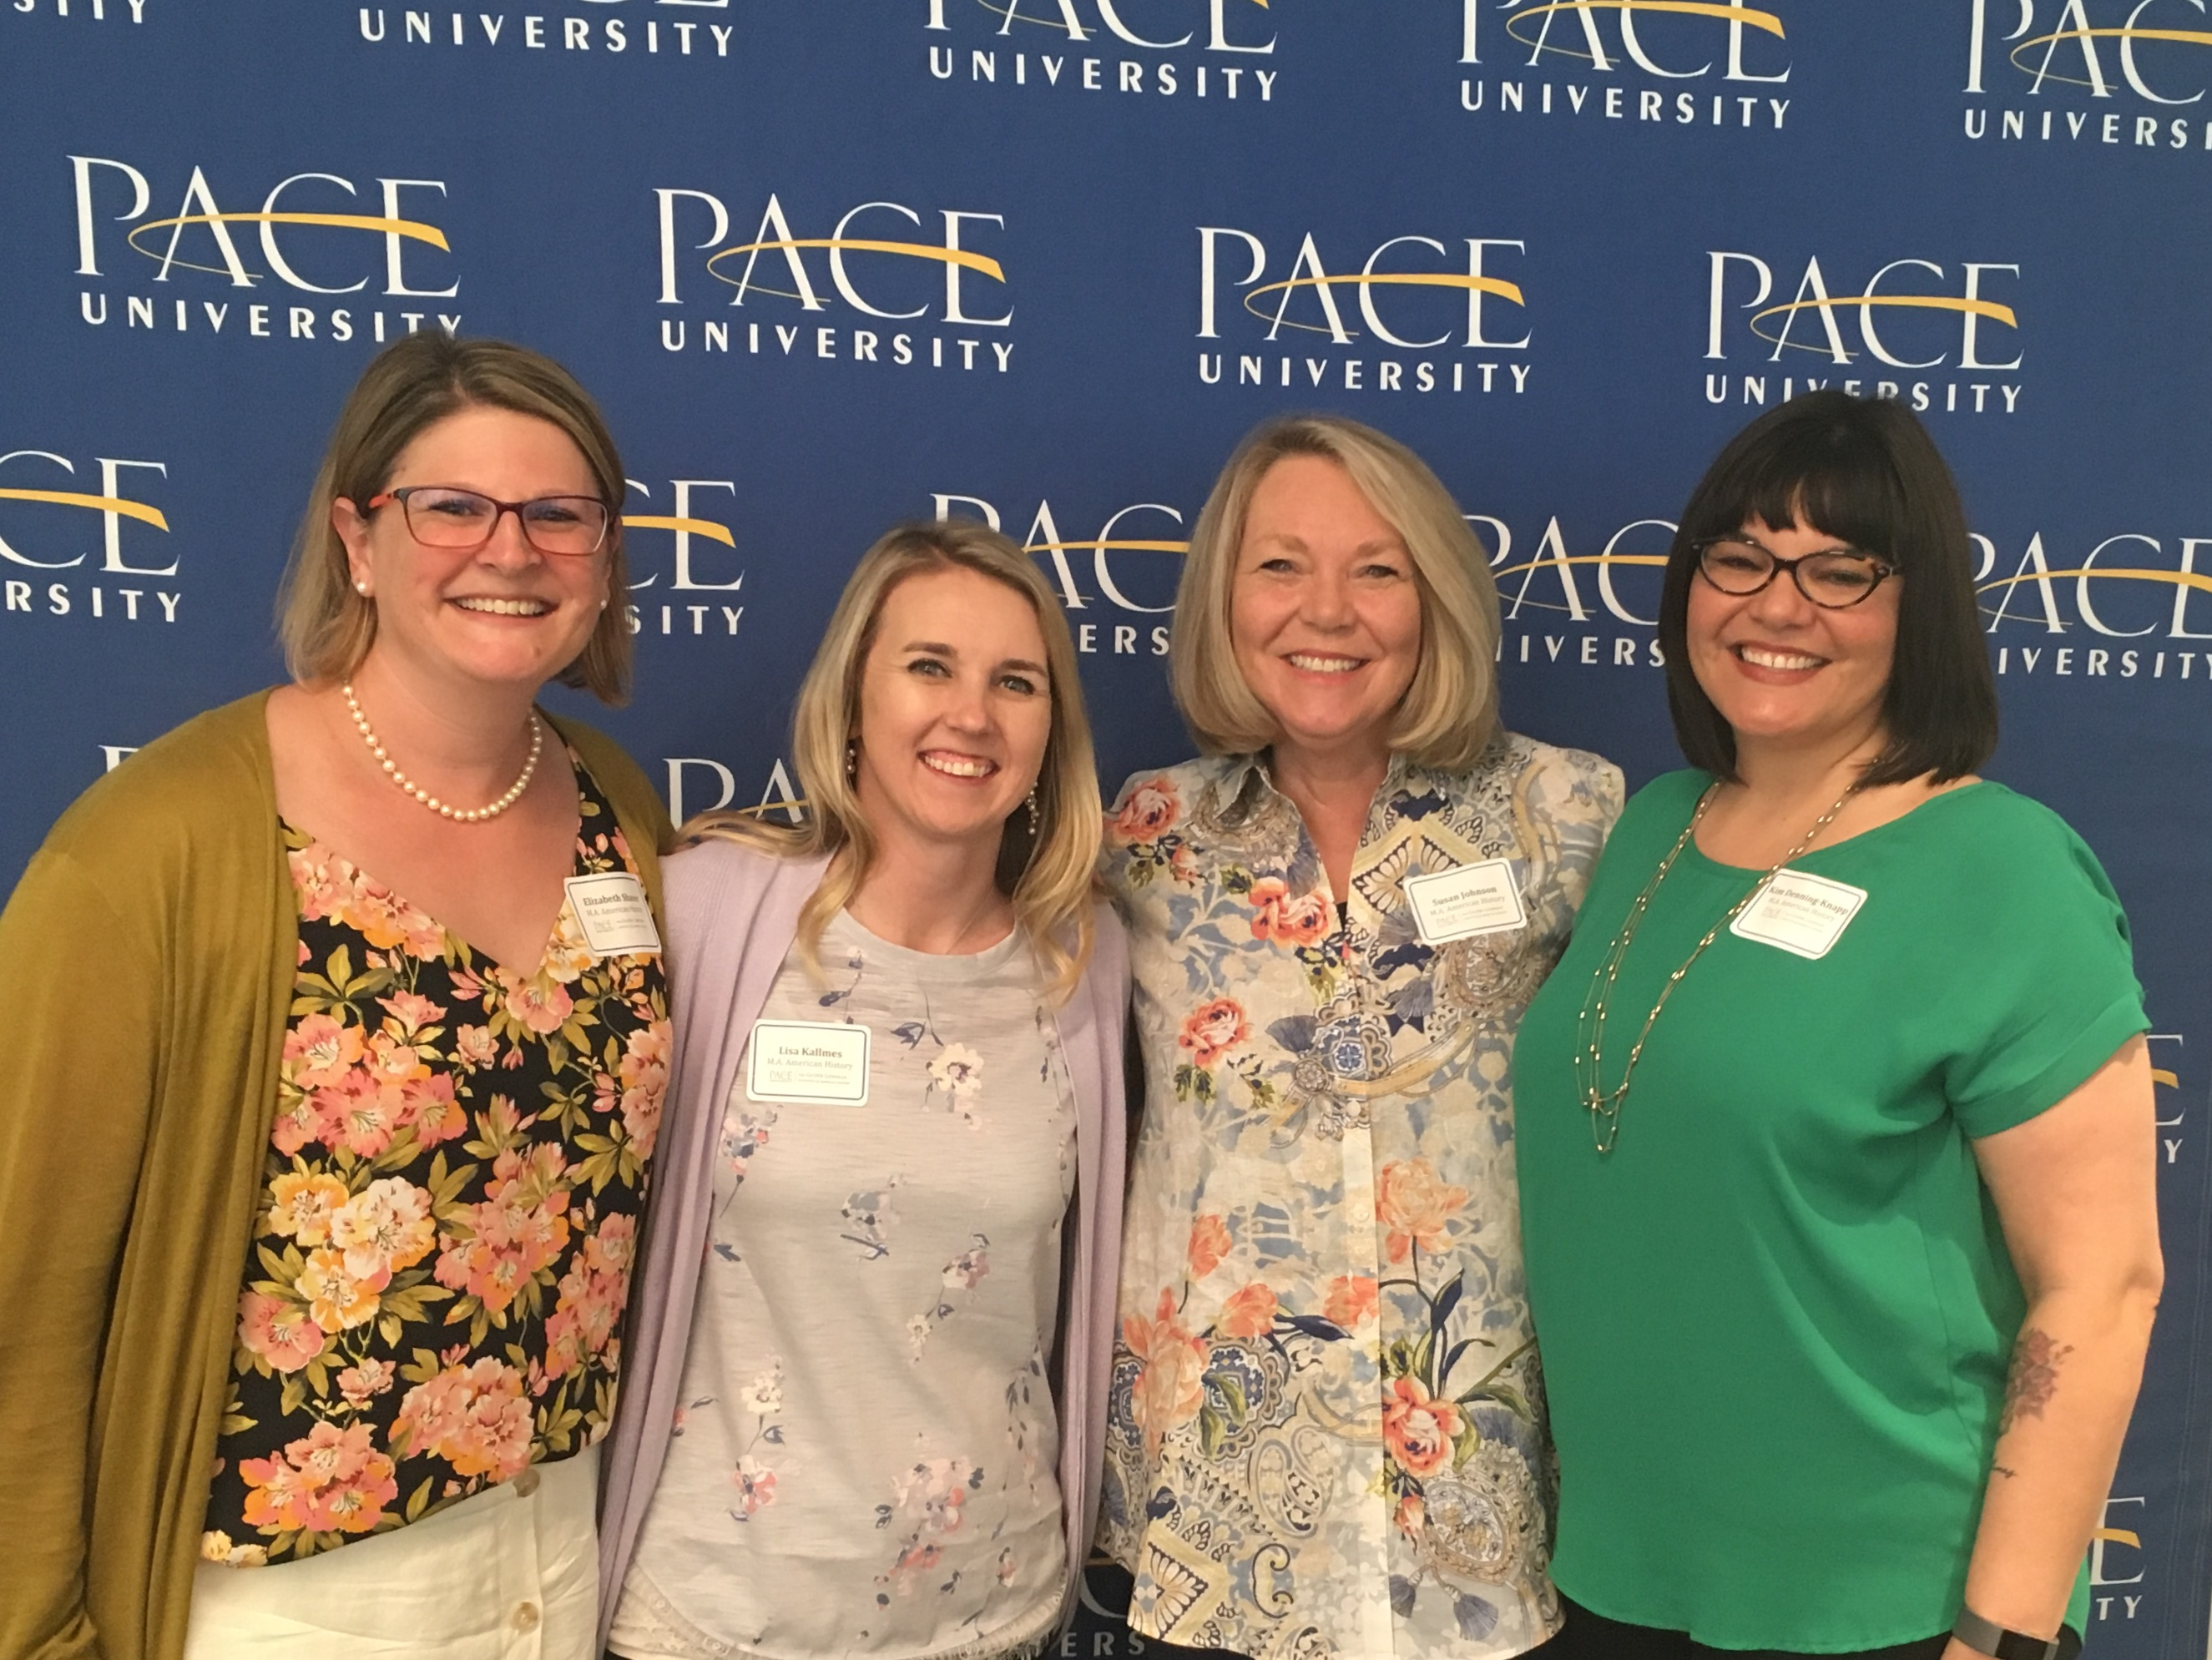 Graduates of the Pace–Gilder Lehrman MA in American History Program (from left) Elizabeth Shaver, Lisa Kallmes, Susan Weaver Johnson, Kim Denning-Knapp